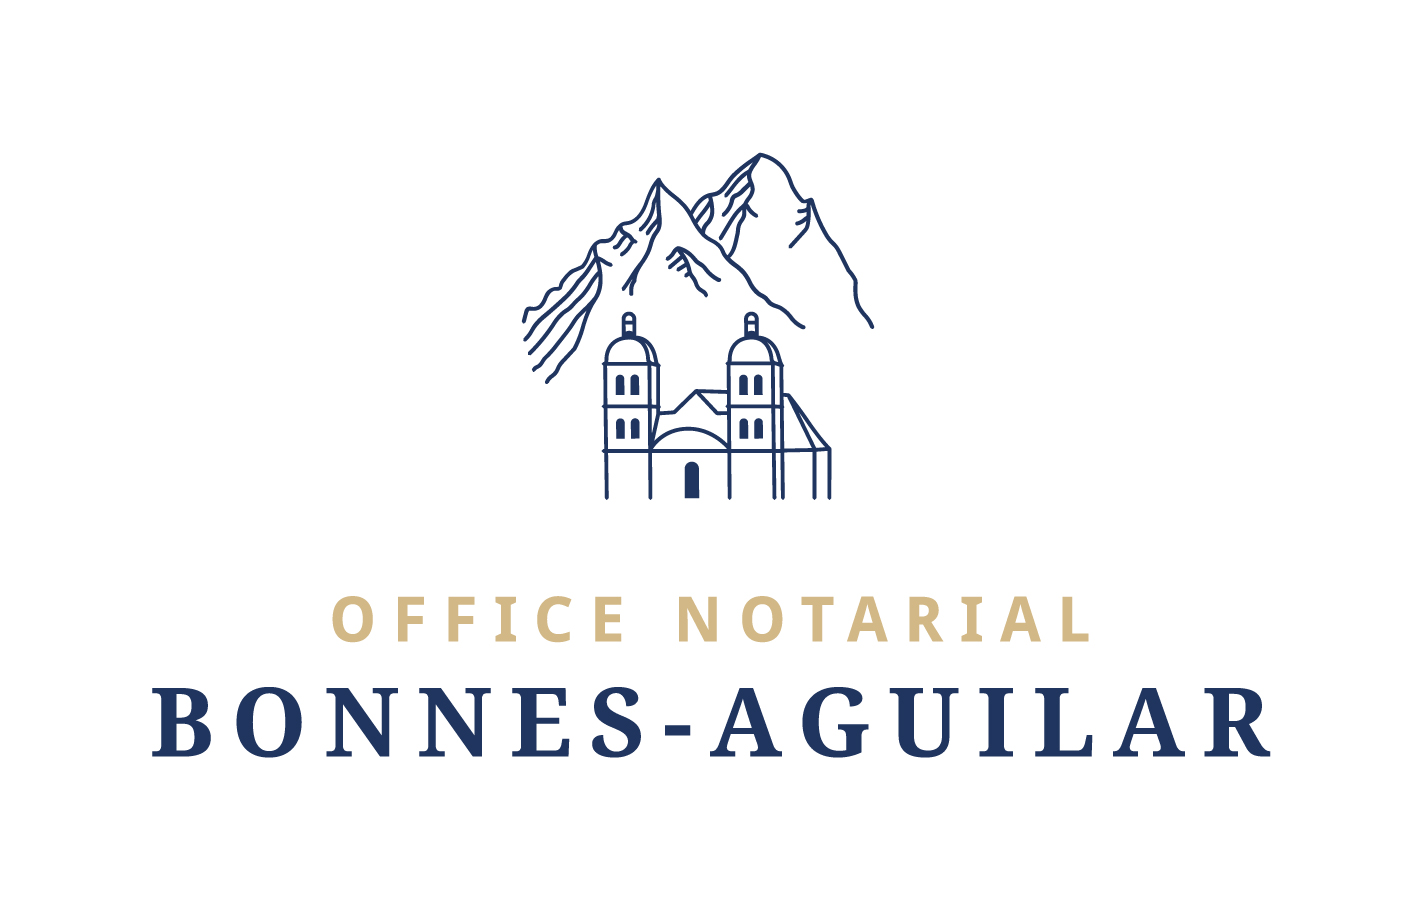 Office Notarial Bonnes Aguilar